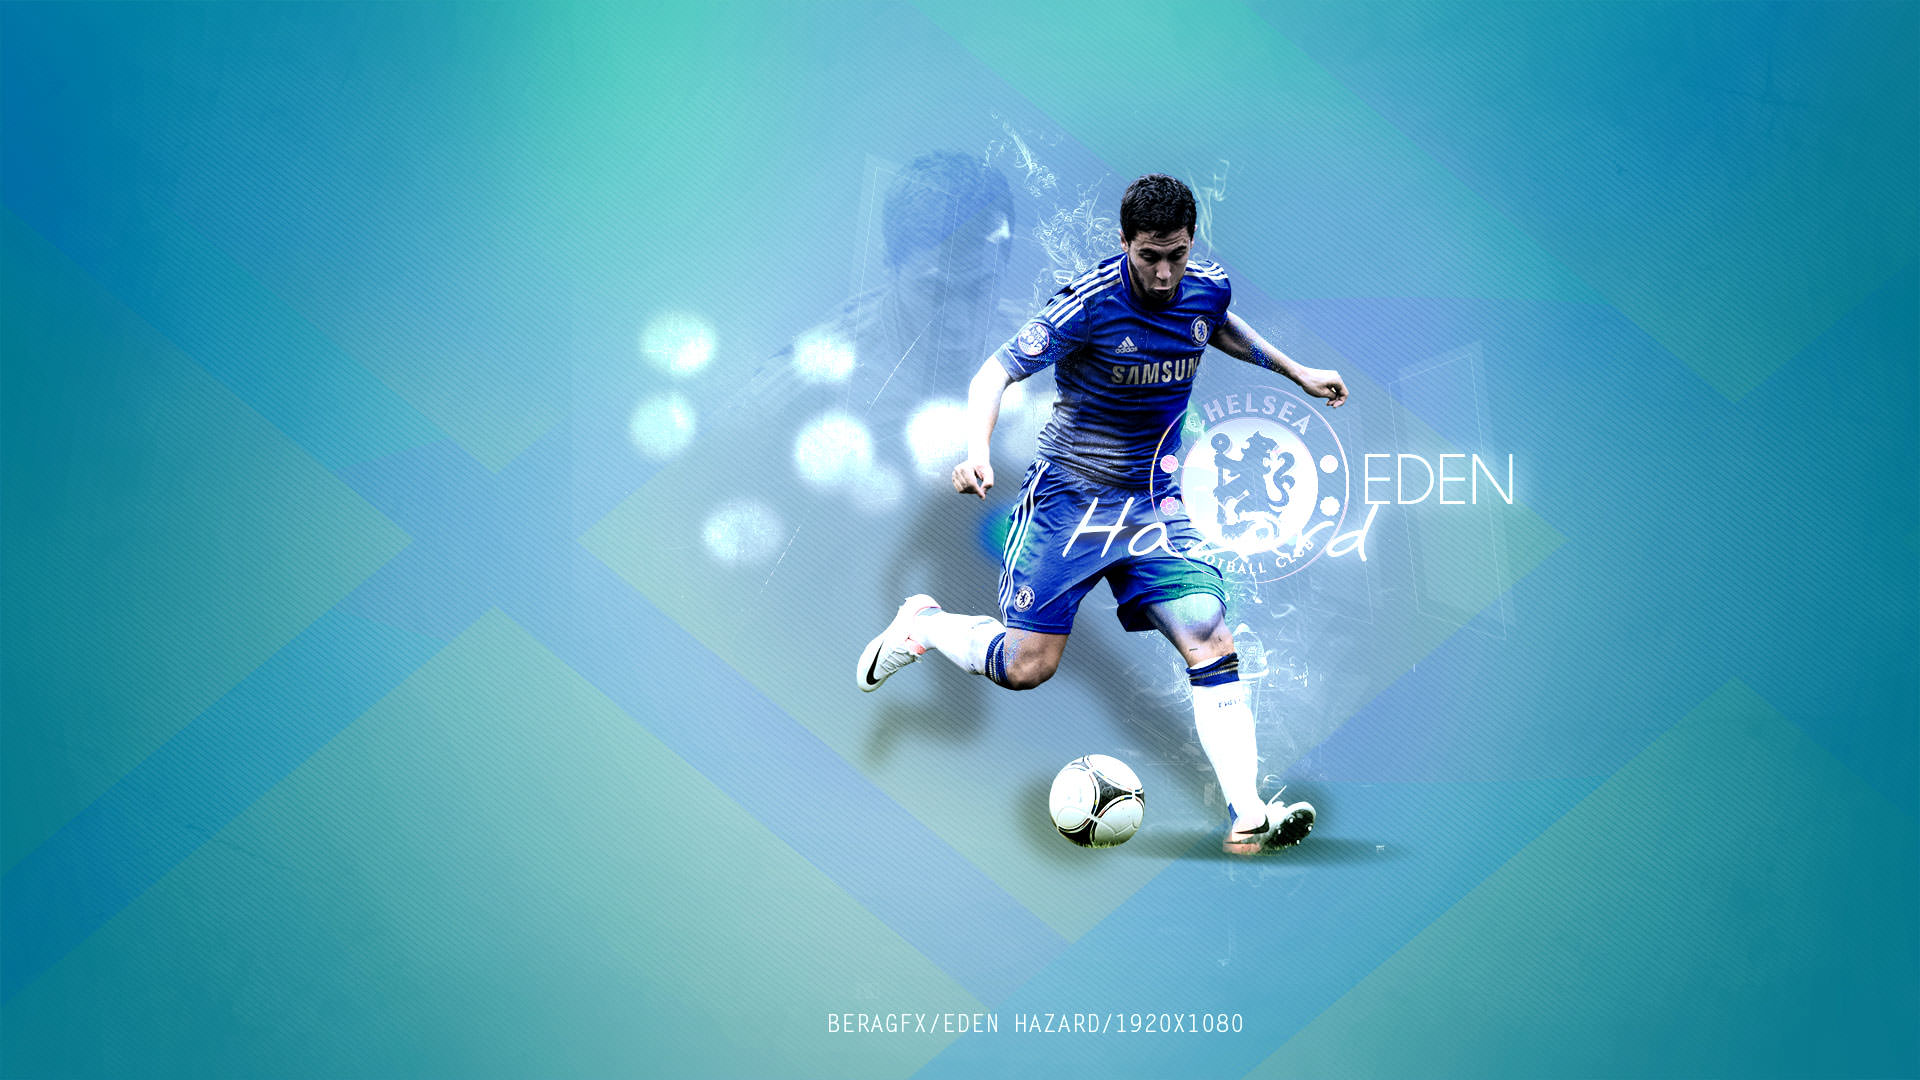 Wallpaper Eden Hazard – Chelsea Period (3) - Eden Hazard's Website ...